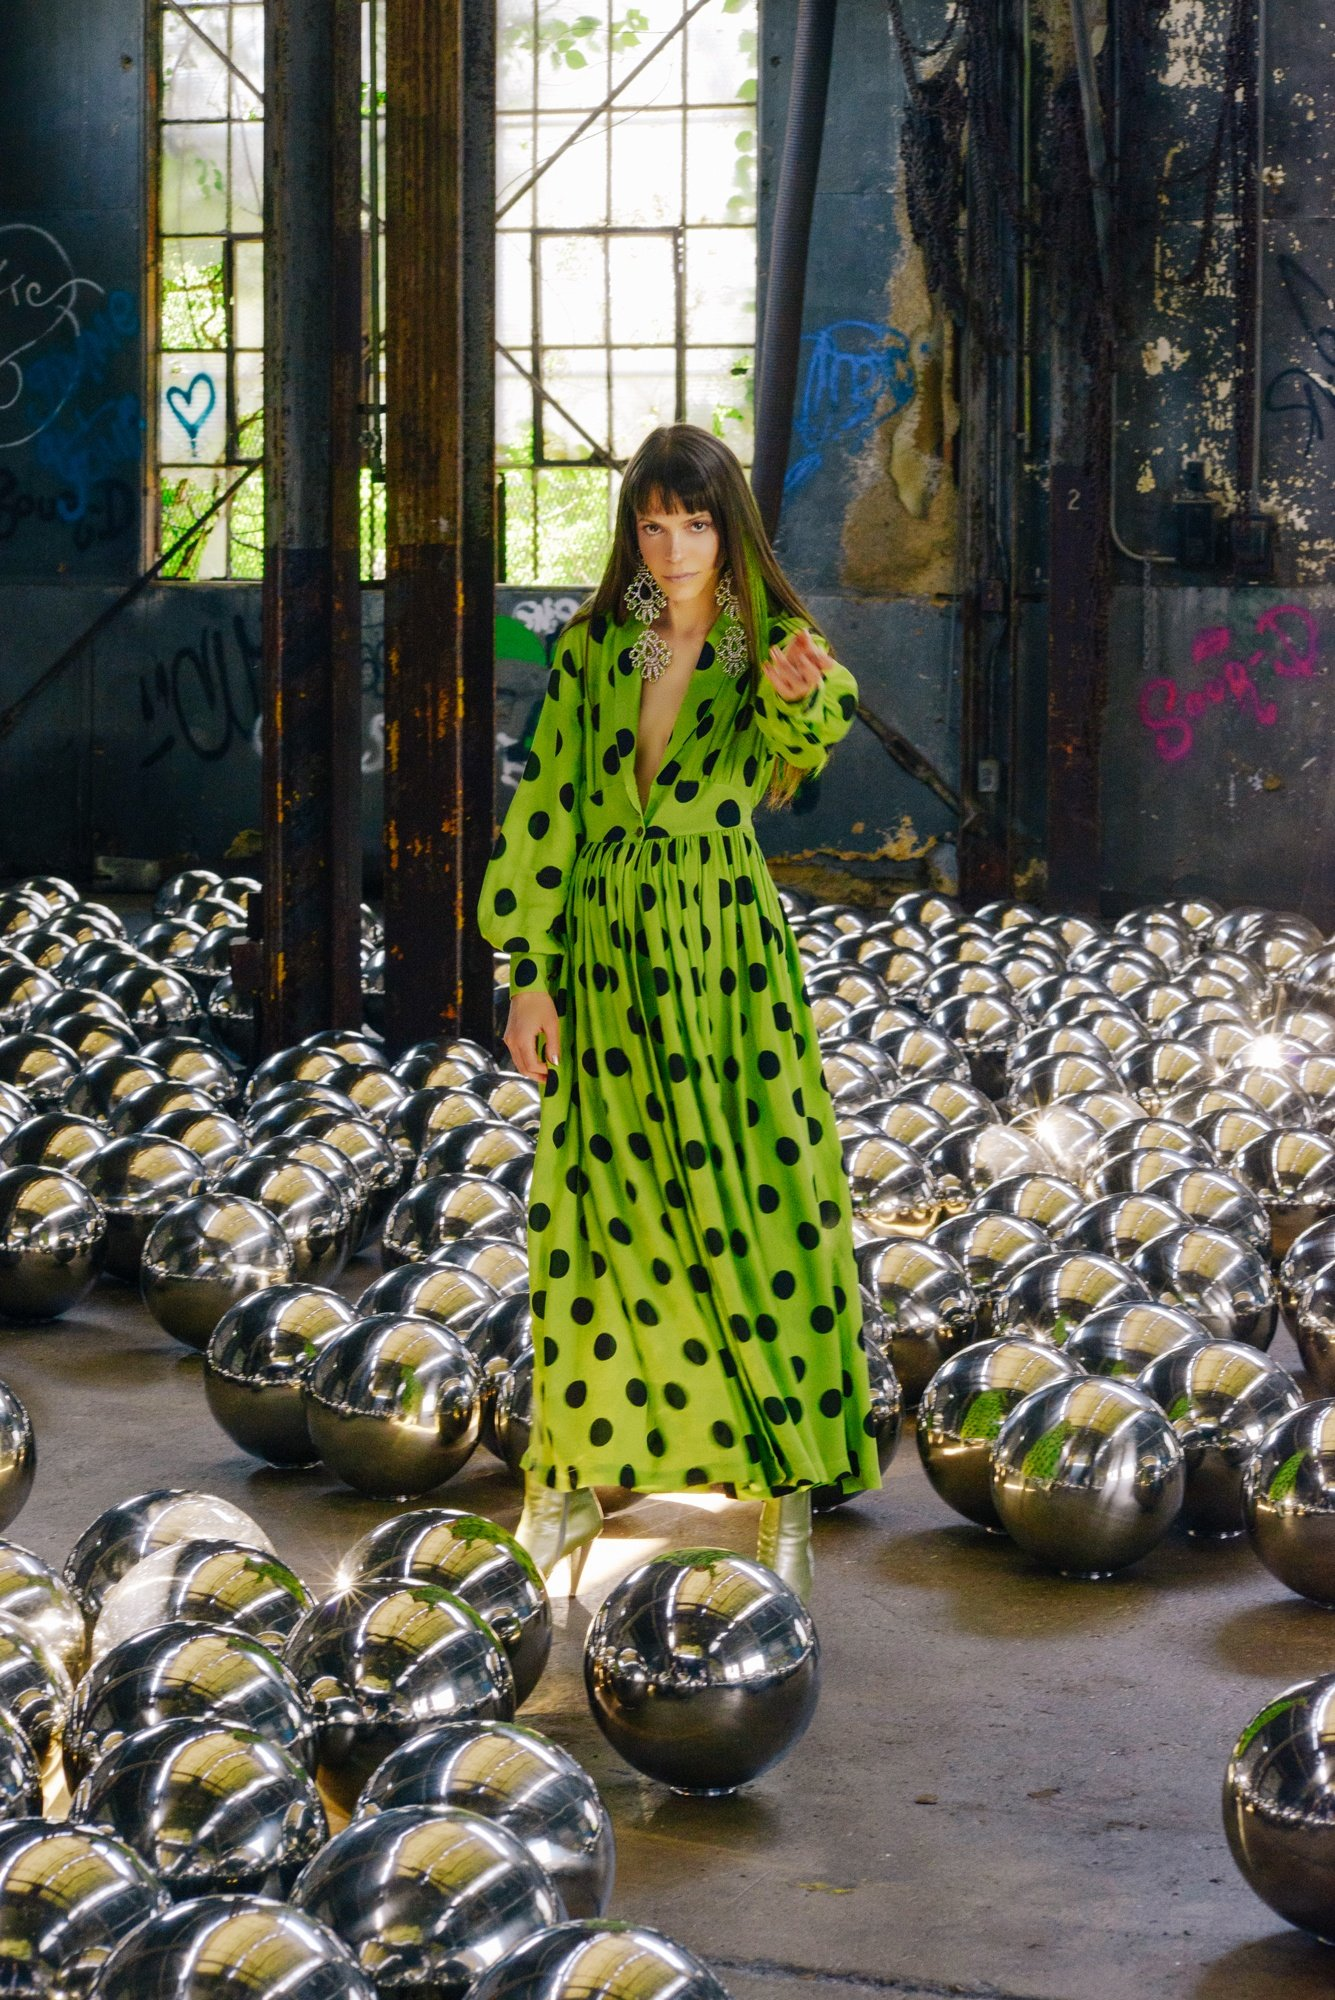 Pari Ehsan wearing a Todd Oldham dress with black polka dots and green satin amongst Yayoi Kusama's Narcissus Garden installation in New York last summer.